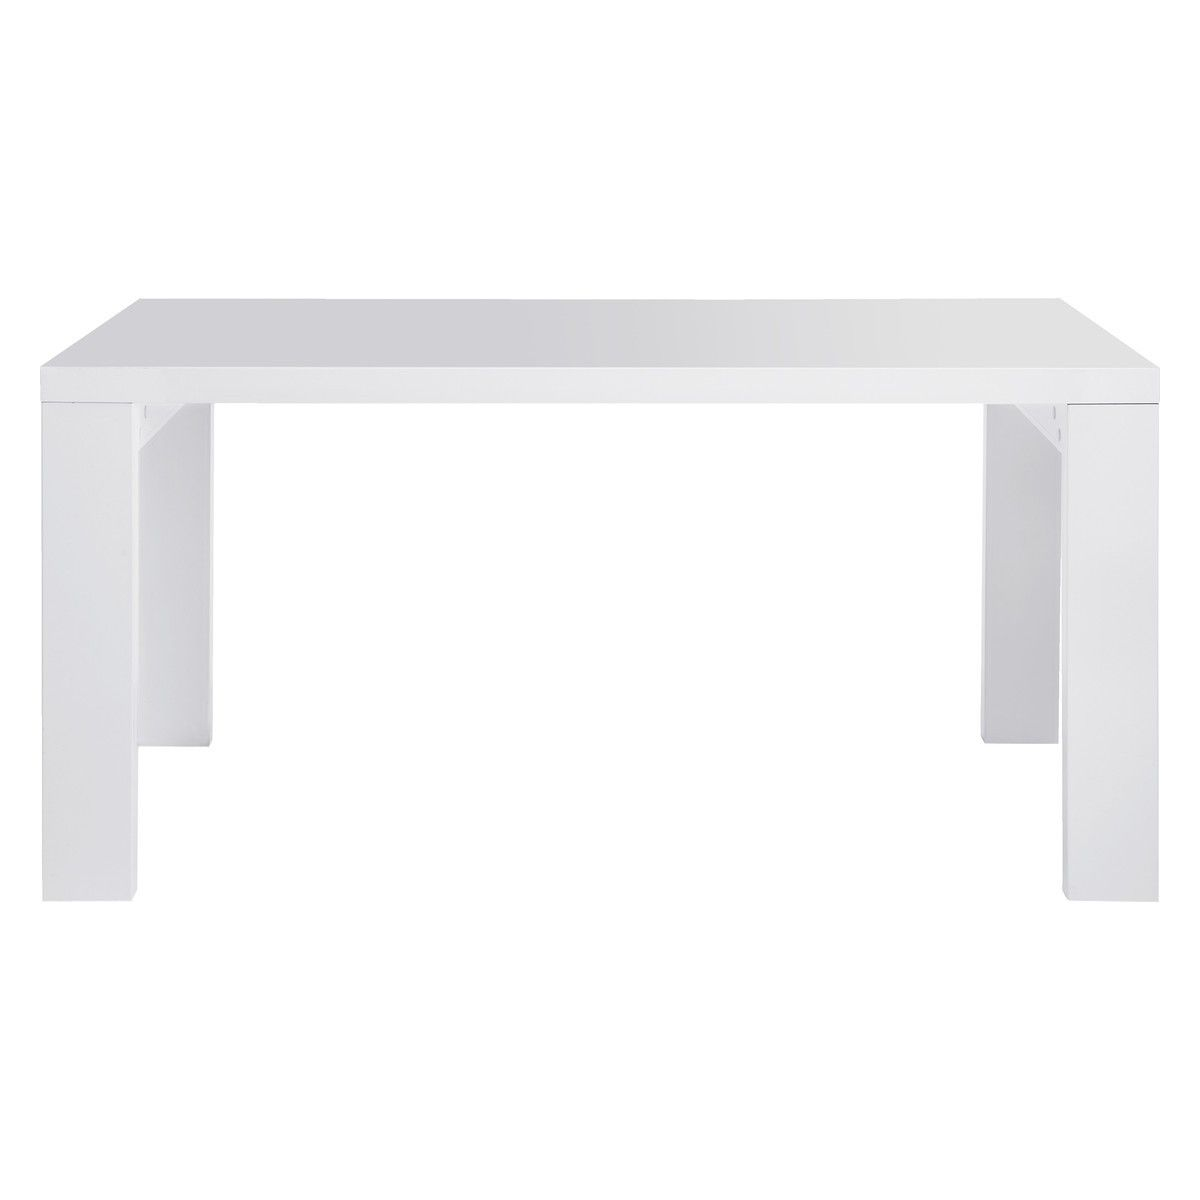 Argos White Dining Table And 6 Chairs: ASPER 6 Seat White High Gloss Dining Table